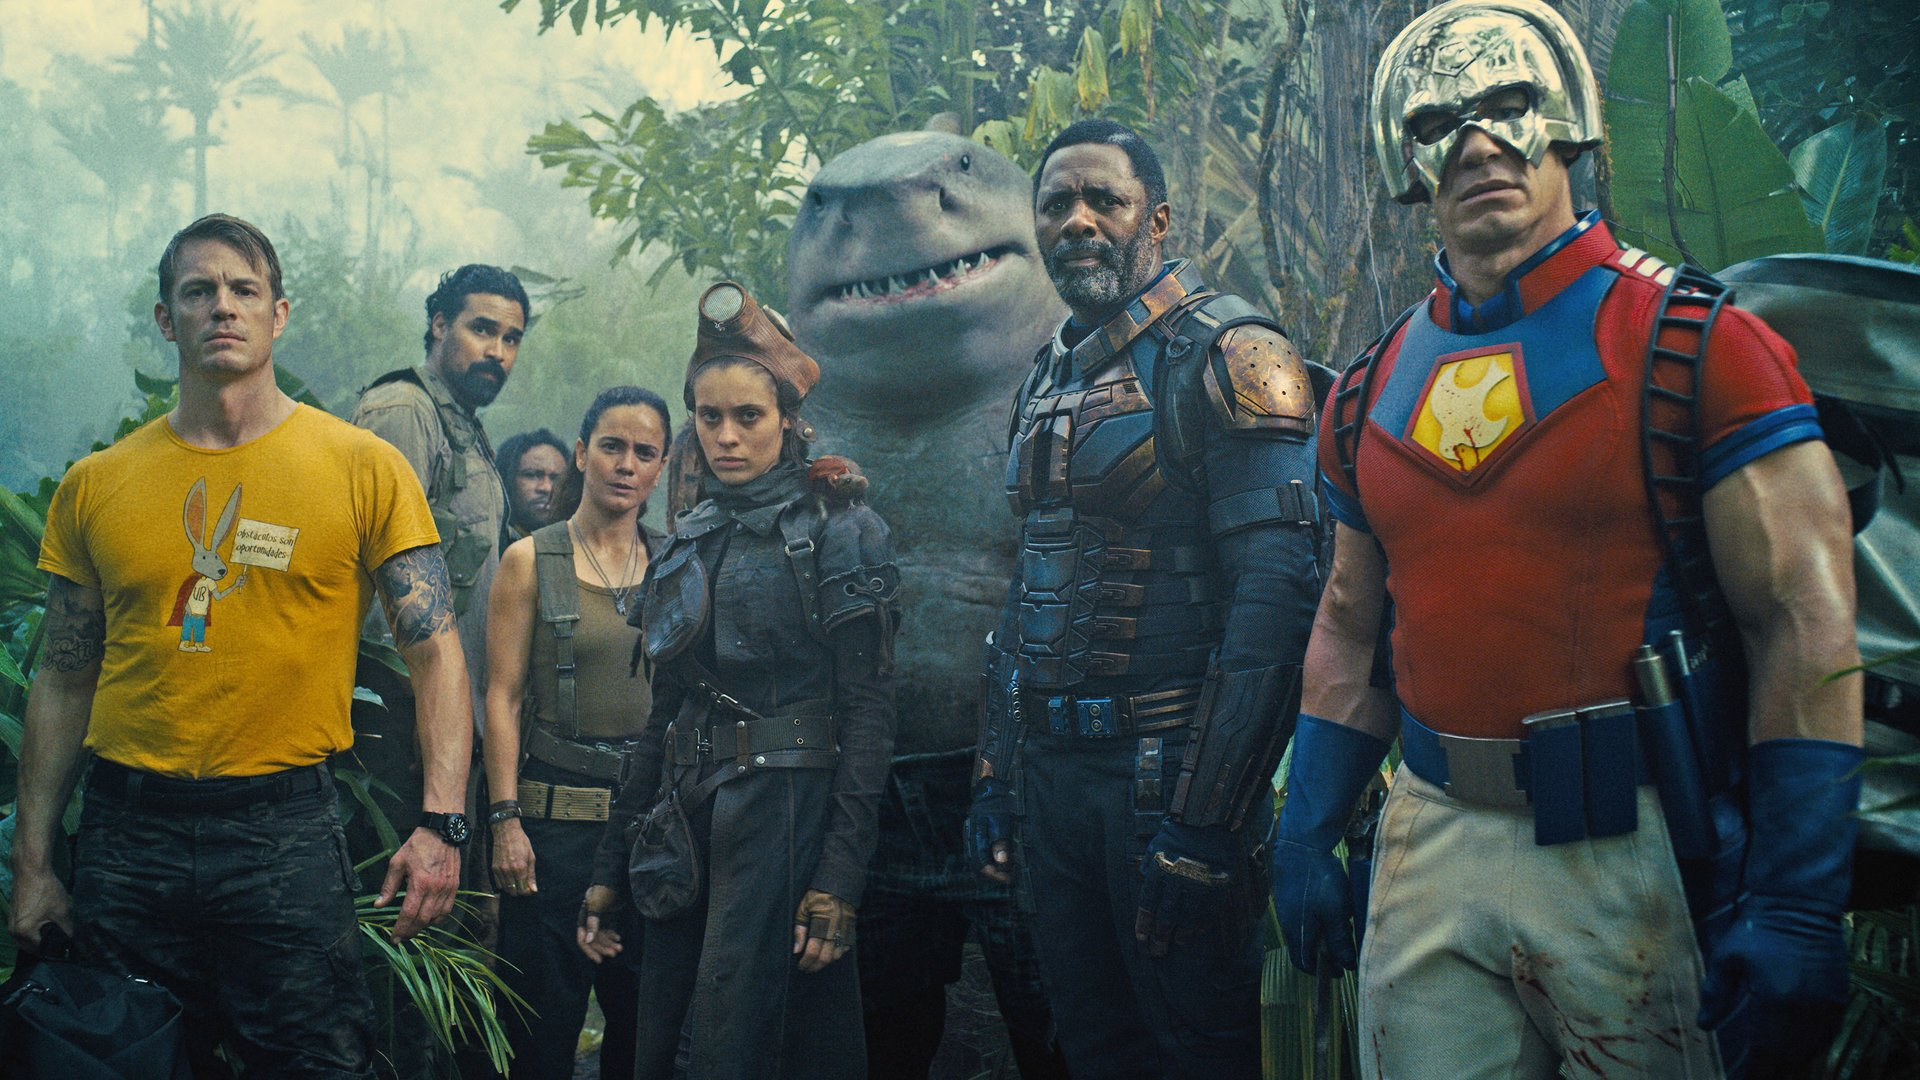 Will Harley Quinn, Peacemaker, King Shark and Co. return for a sequel? ·  KINO.de